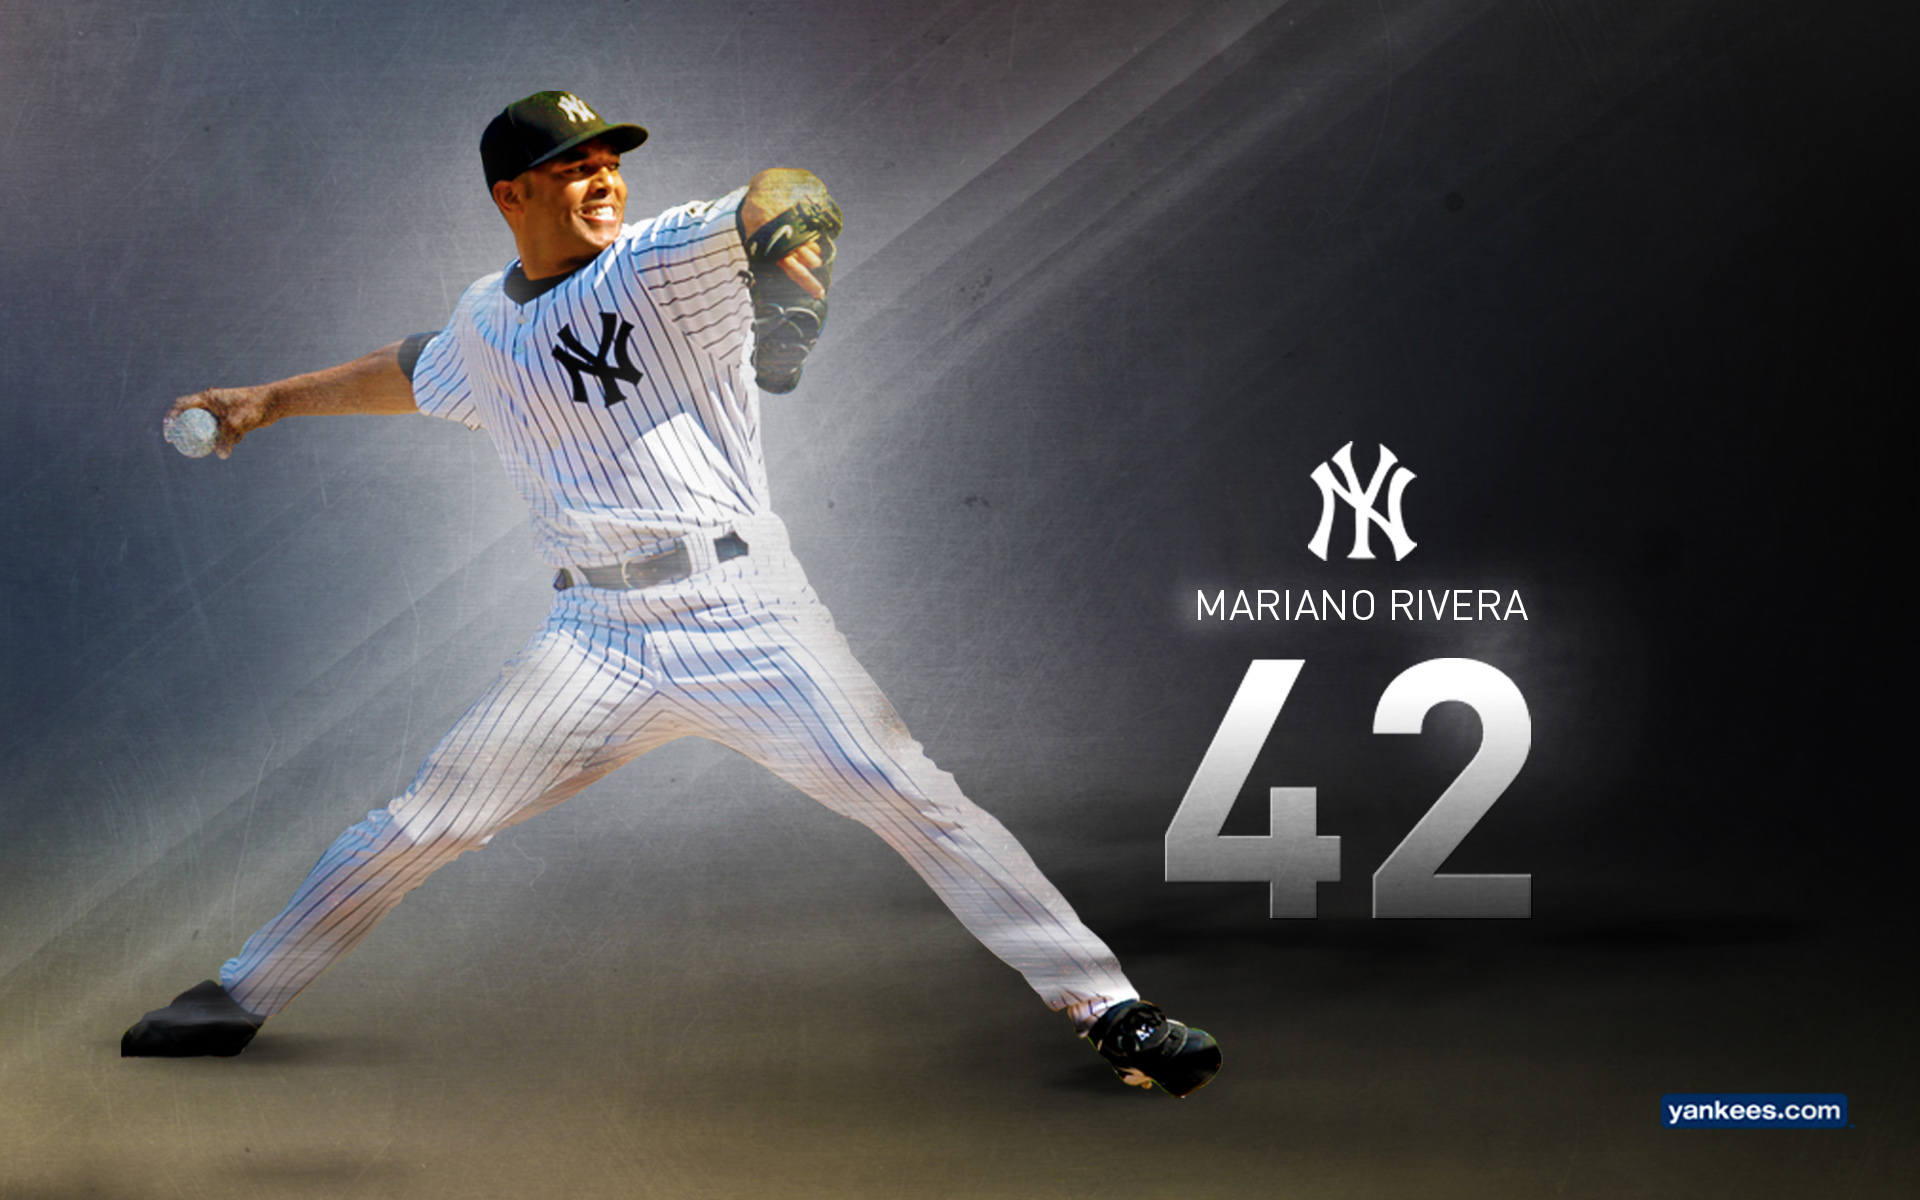 Yankees Wallpaper Images | New York Yankees